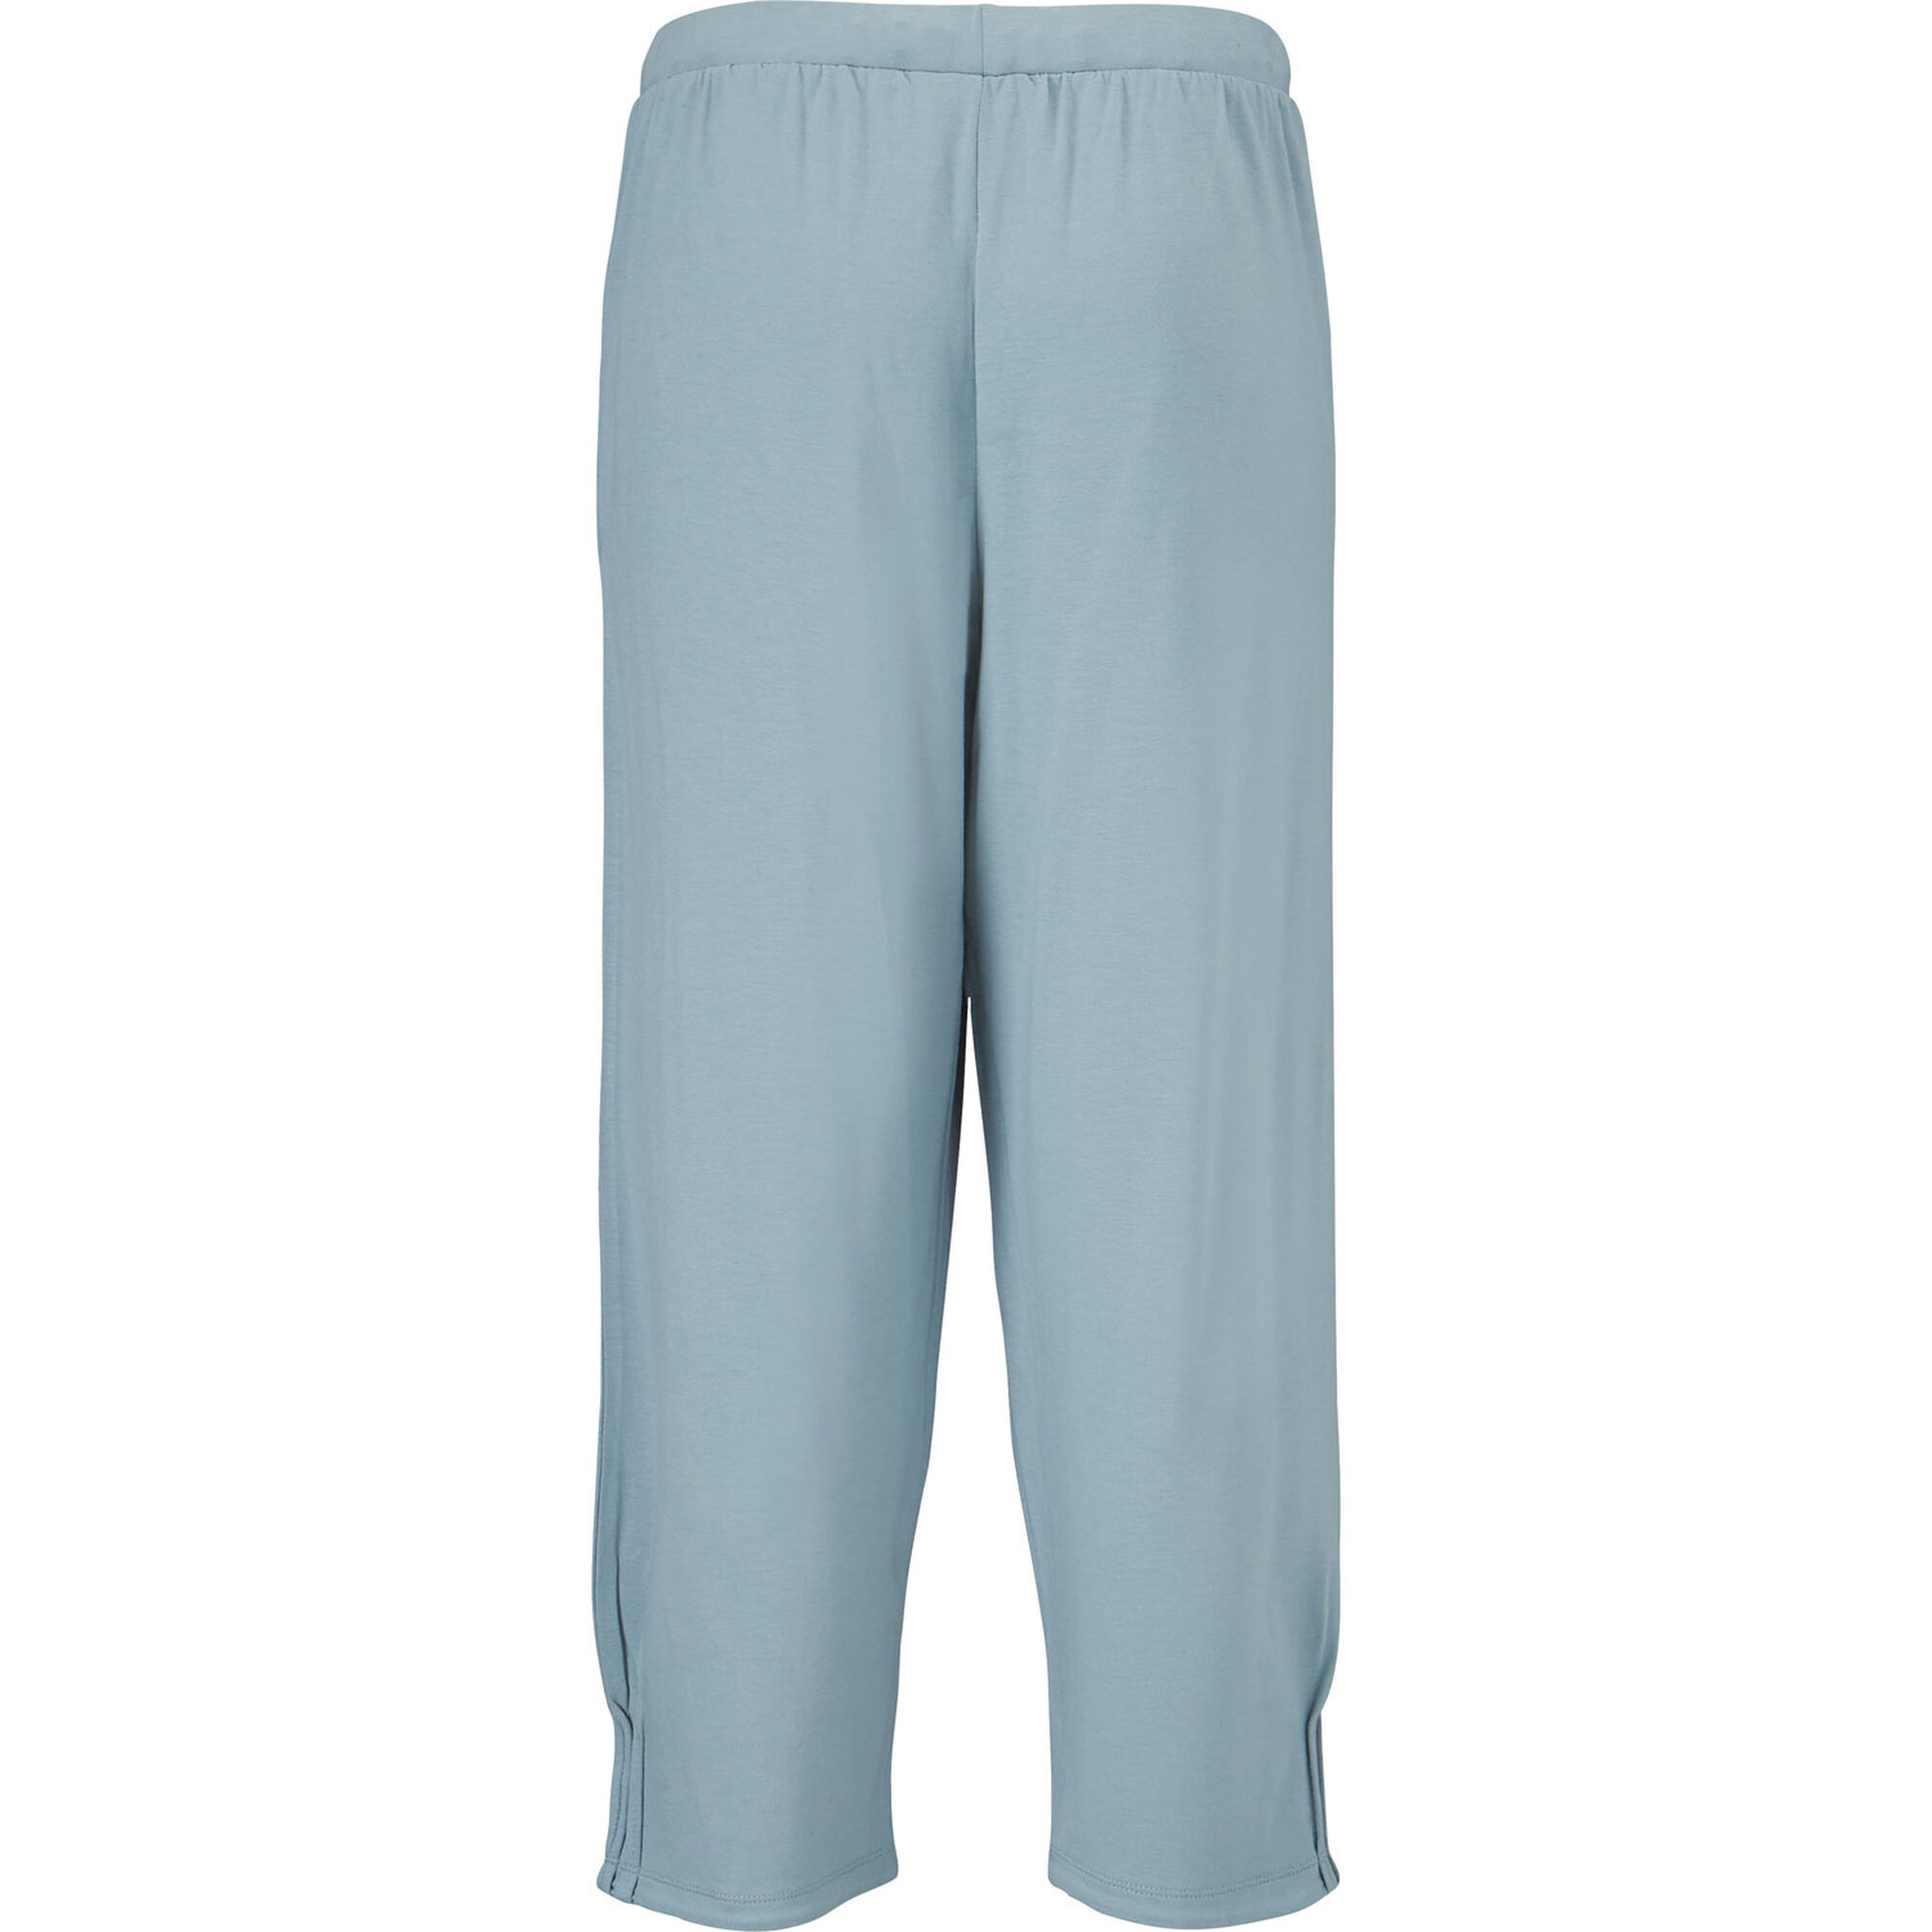 PERSINI TROUSERS, Lead, hi-res